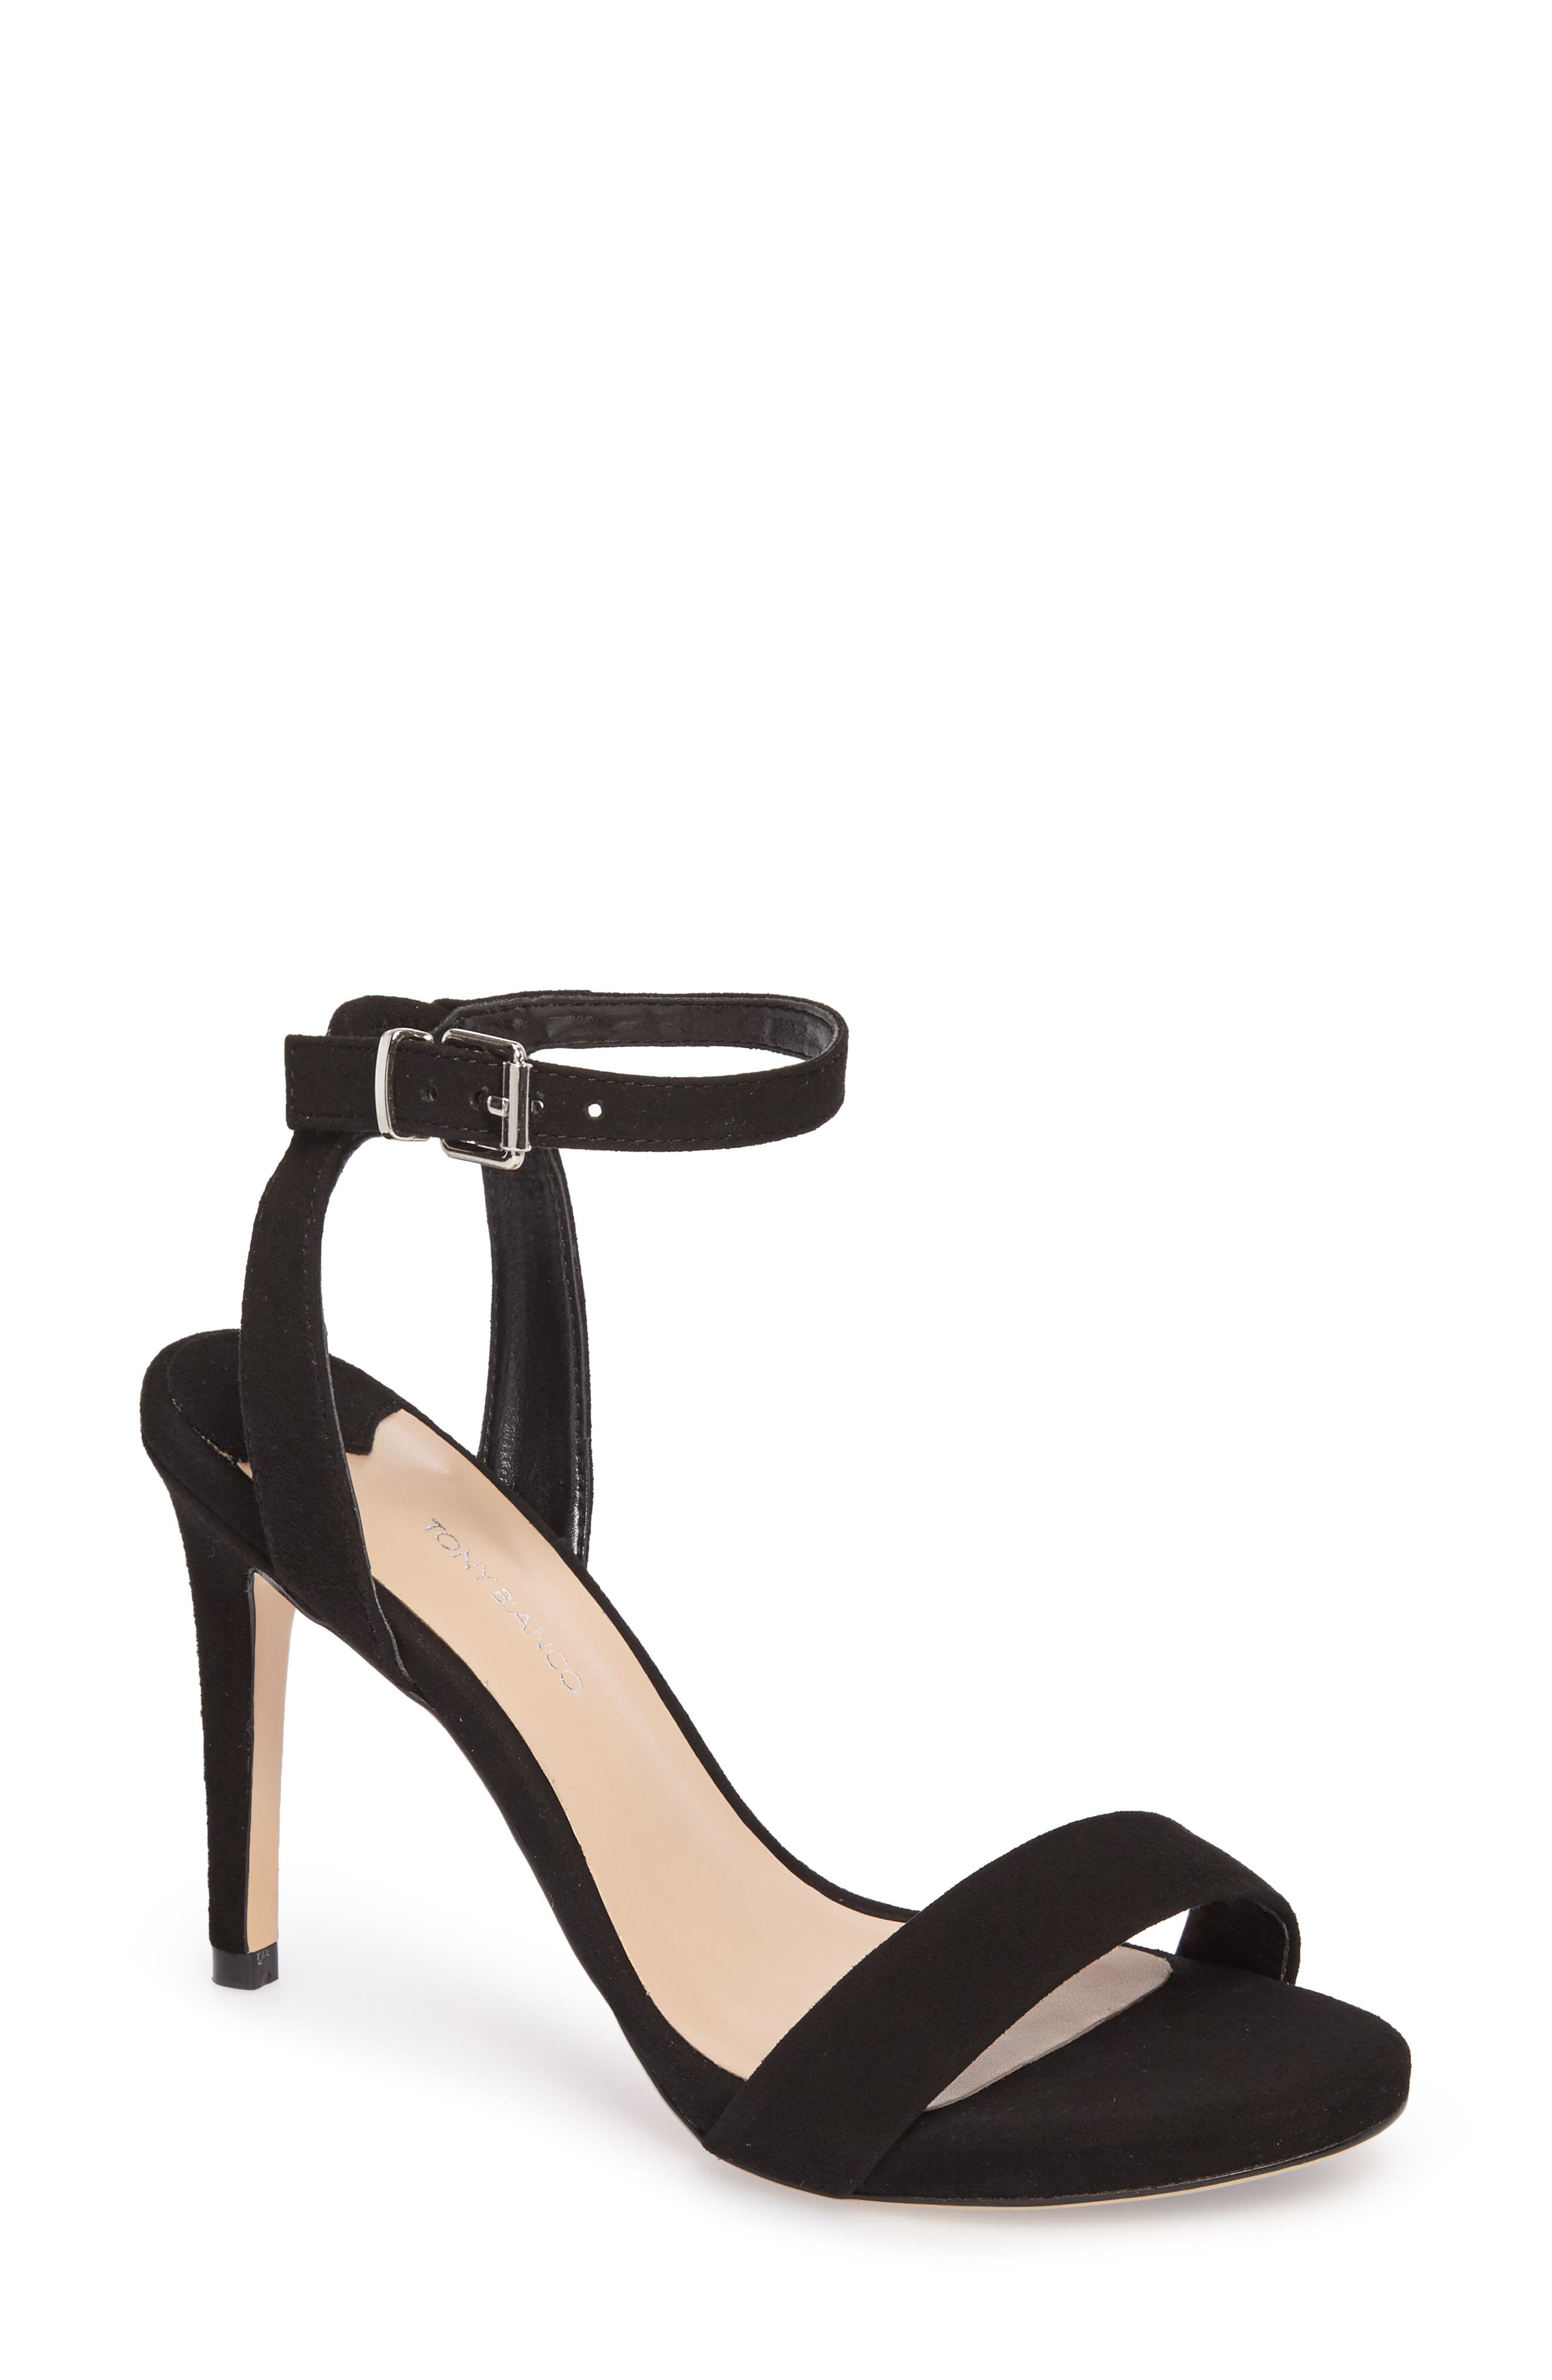 TONY BIANCO,                             Char Ankle Cuff Sandal,                             Main thumbnail 1, color,                             001